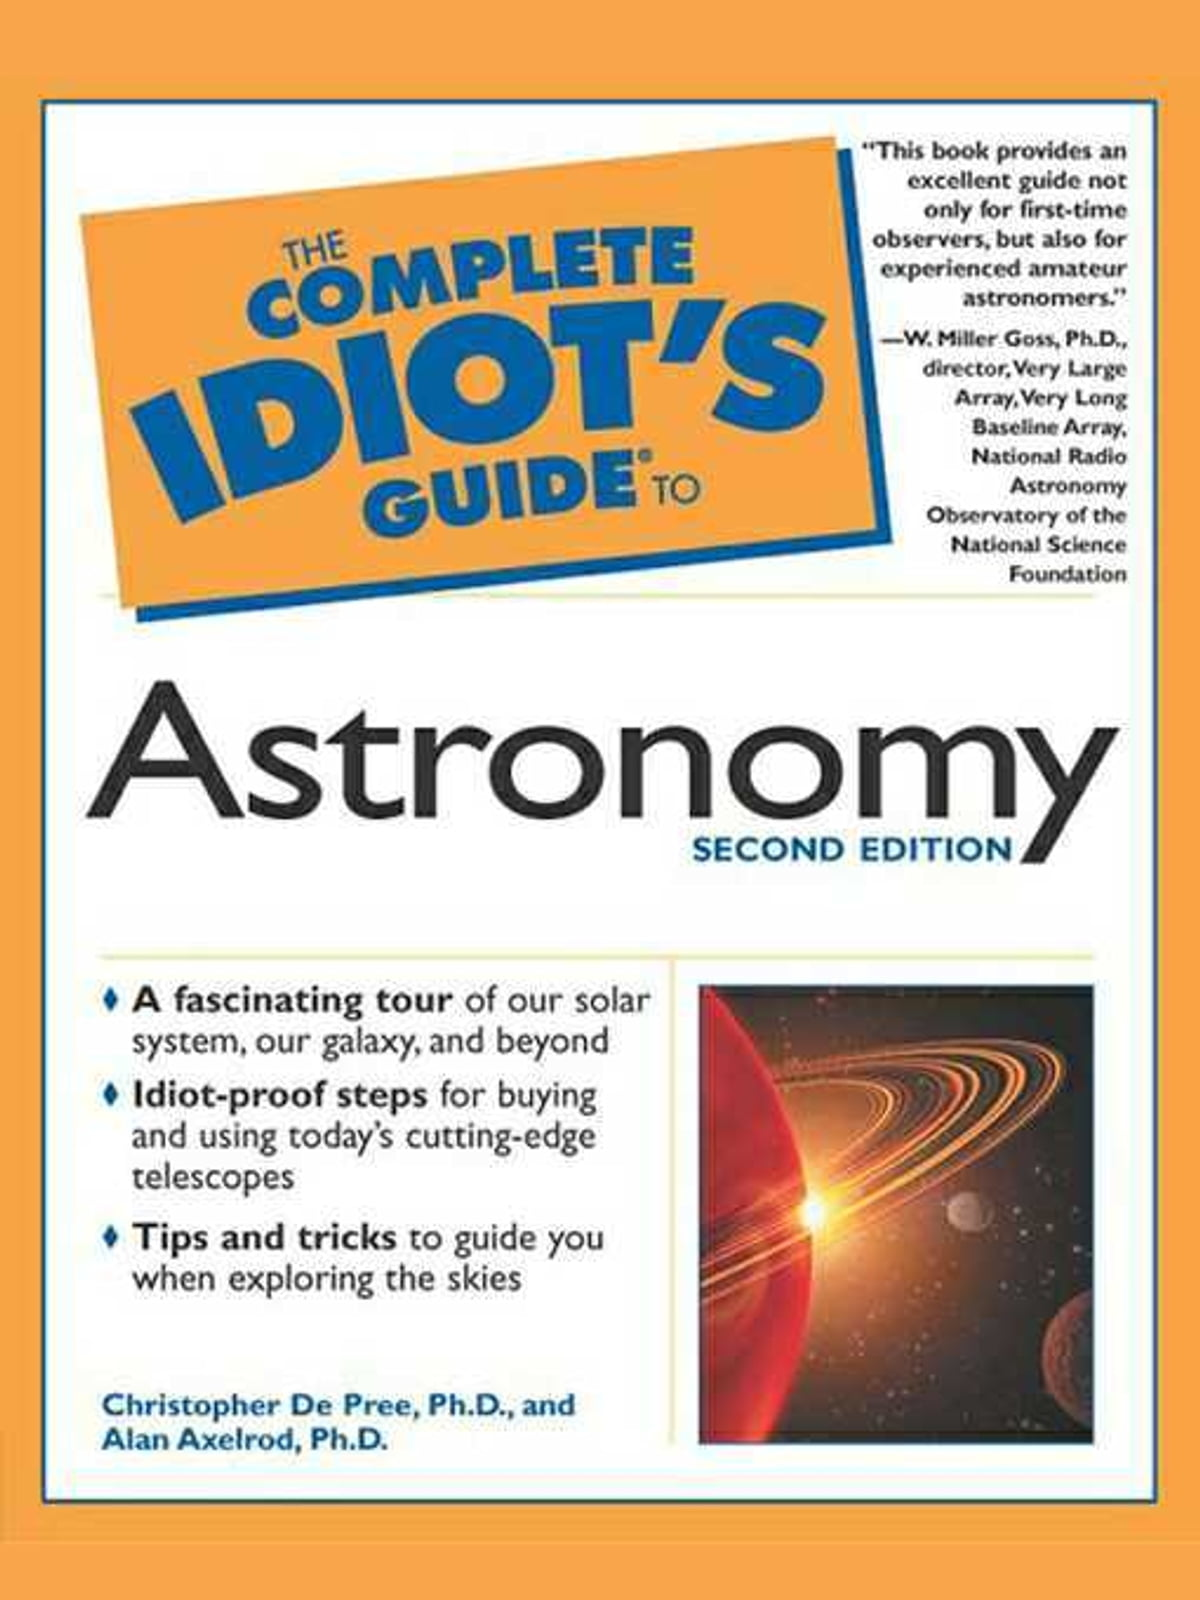 Review The Complete Idiot's Guide to Astrology